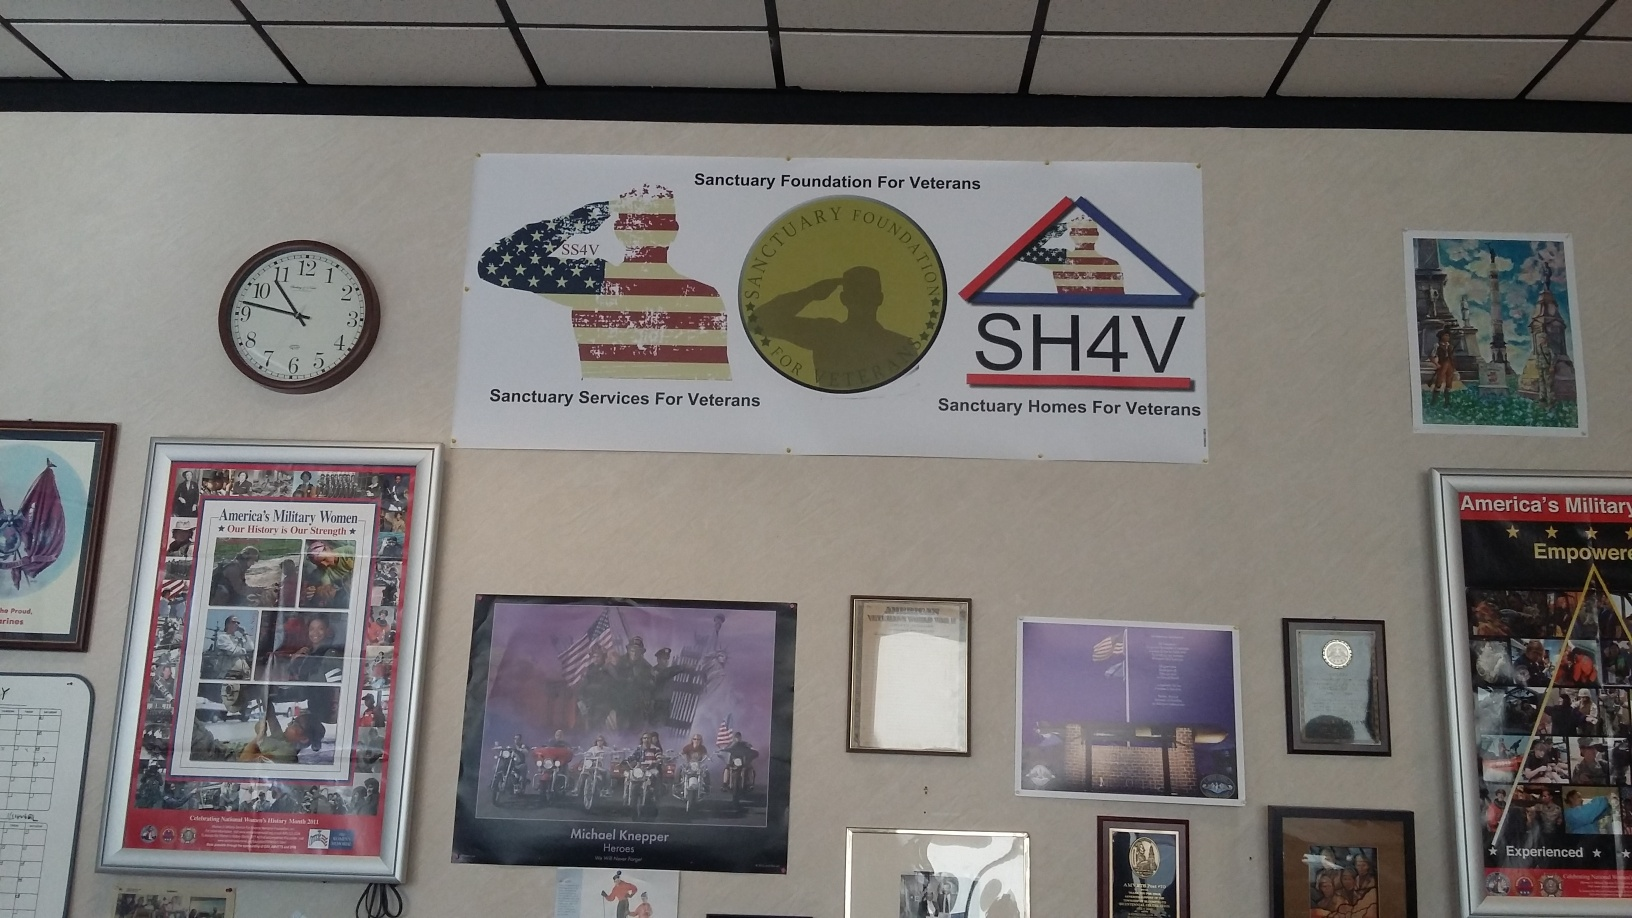 SANCTUARY'S BANNER AT THE OFFICE